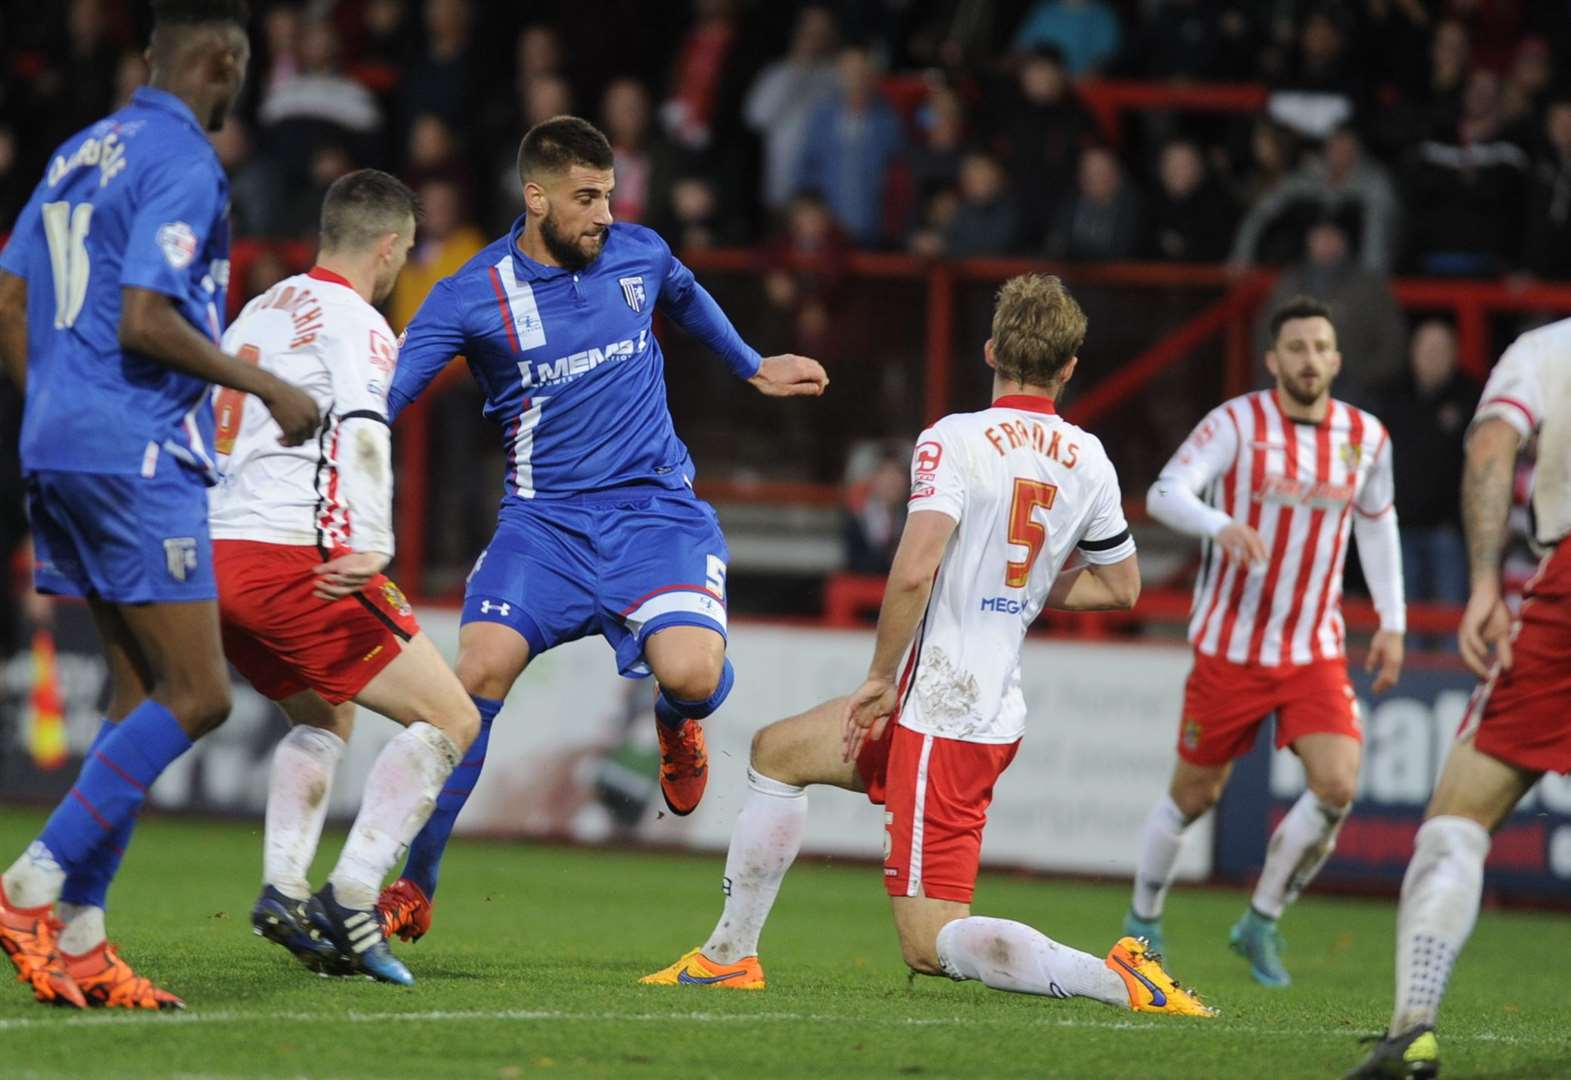 Busy Gills complete schedule